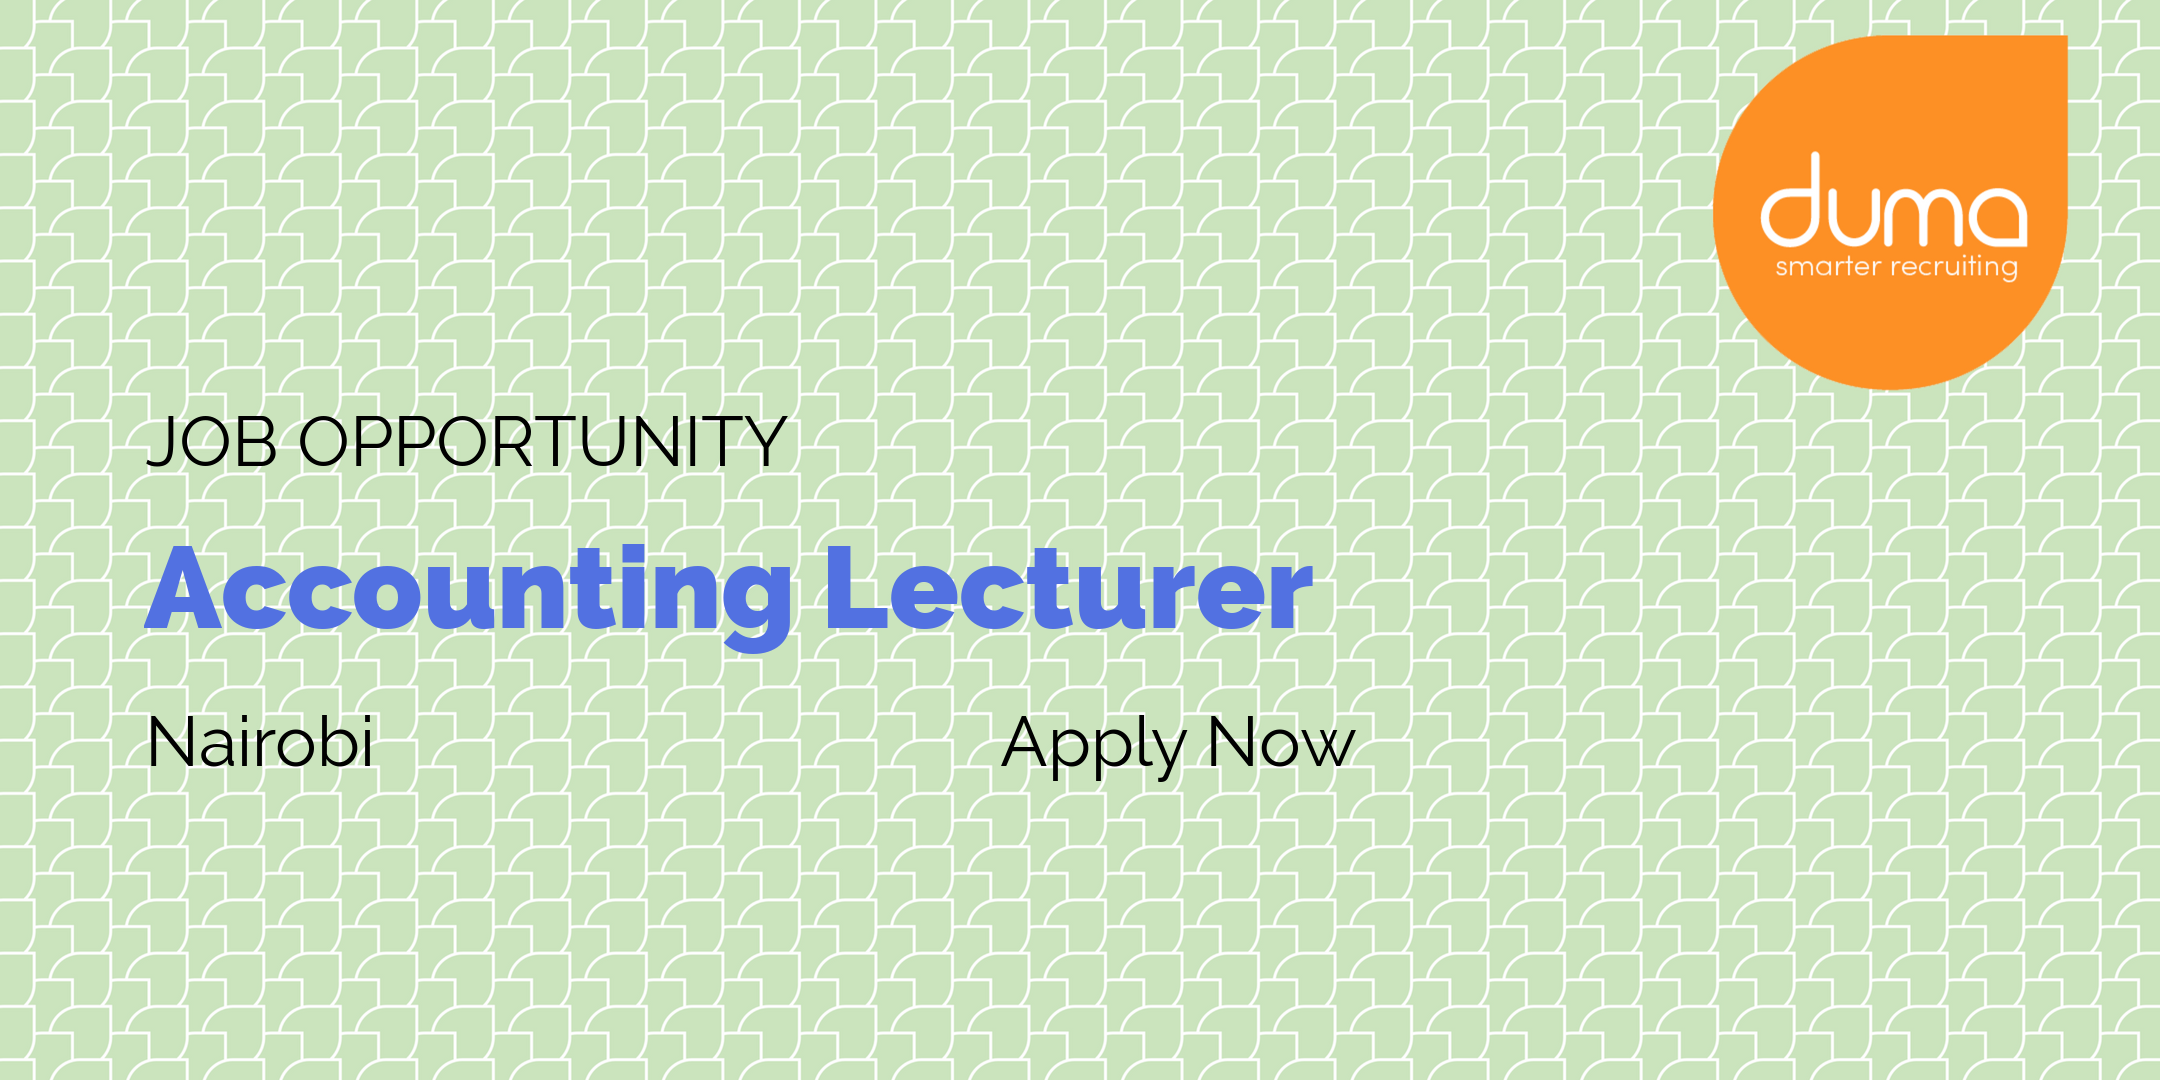 Job Vacancy - Accounting Lecturer